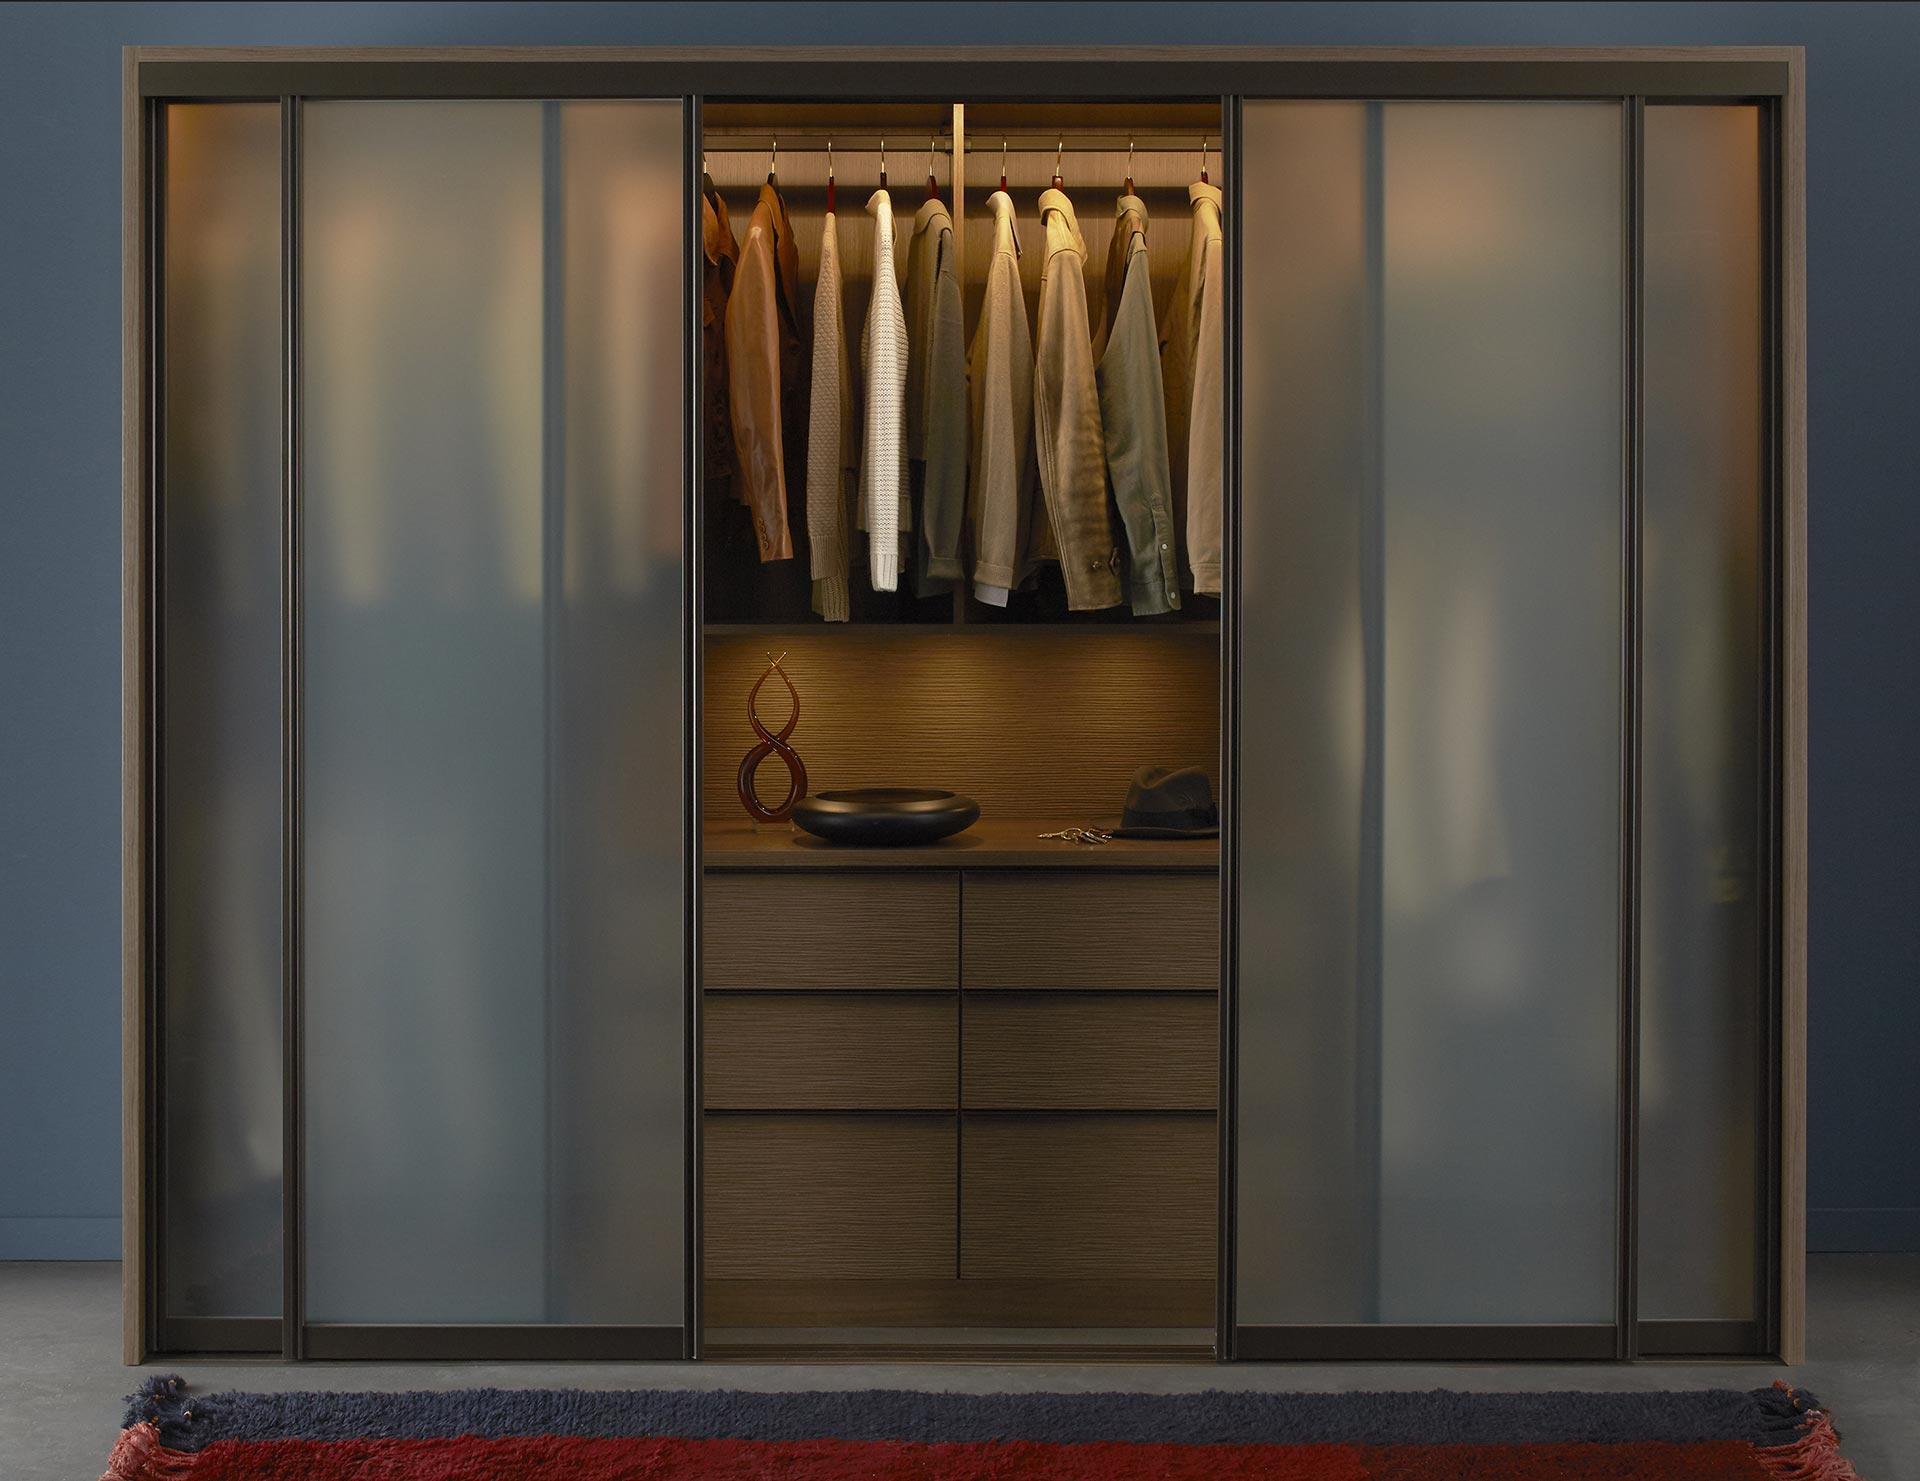 Wardrobe: Furnishing ideas with the furniture